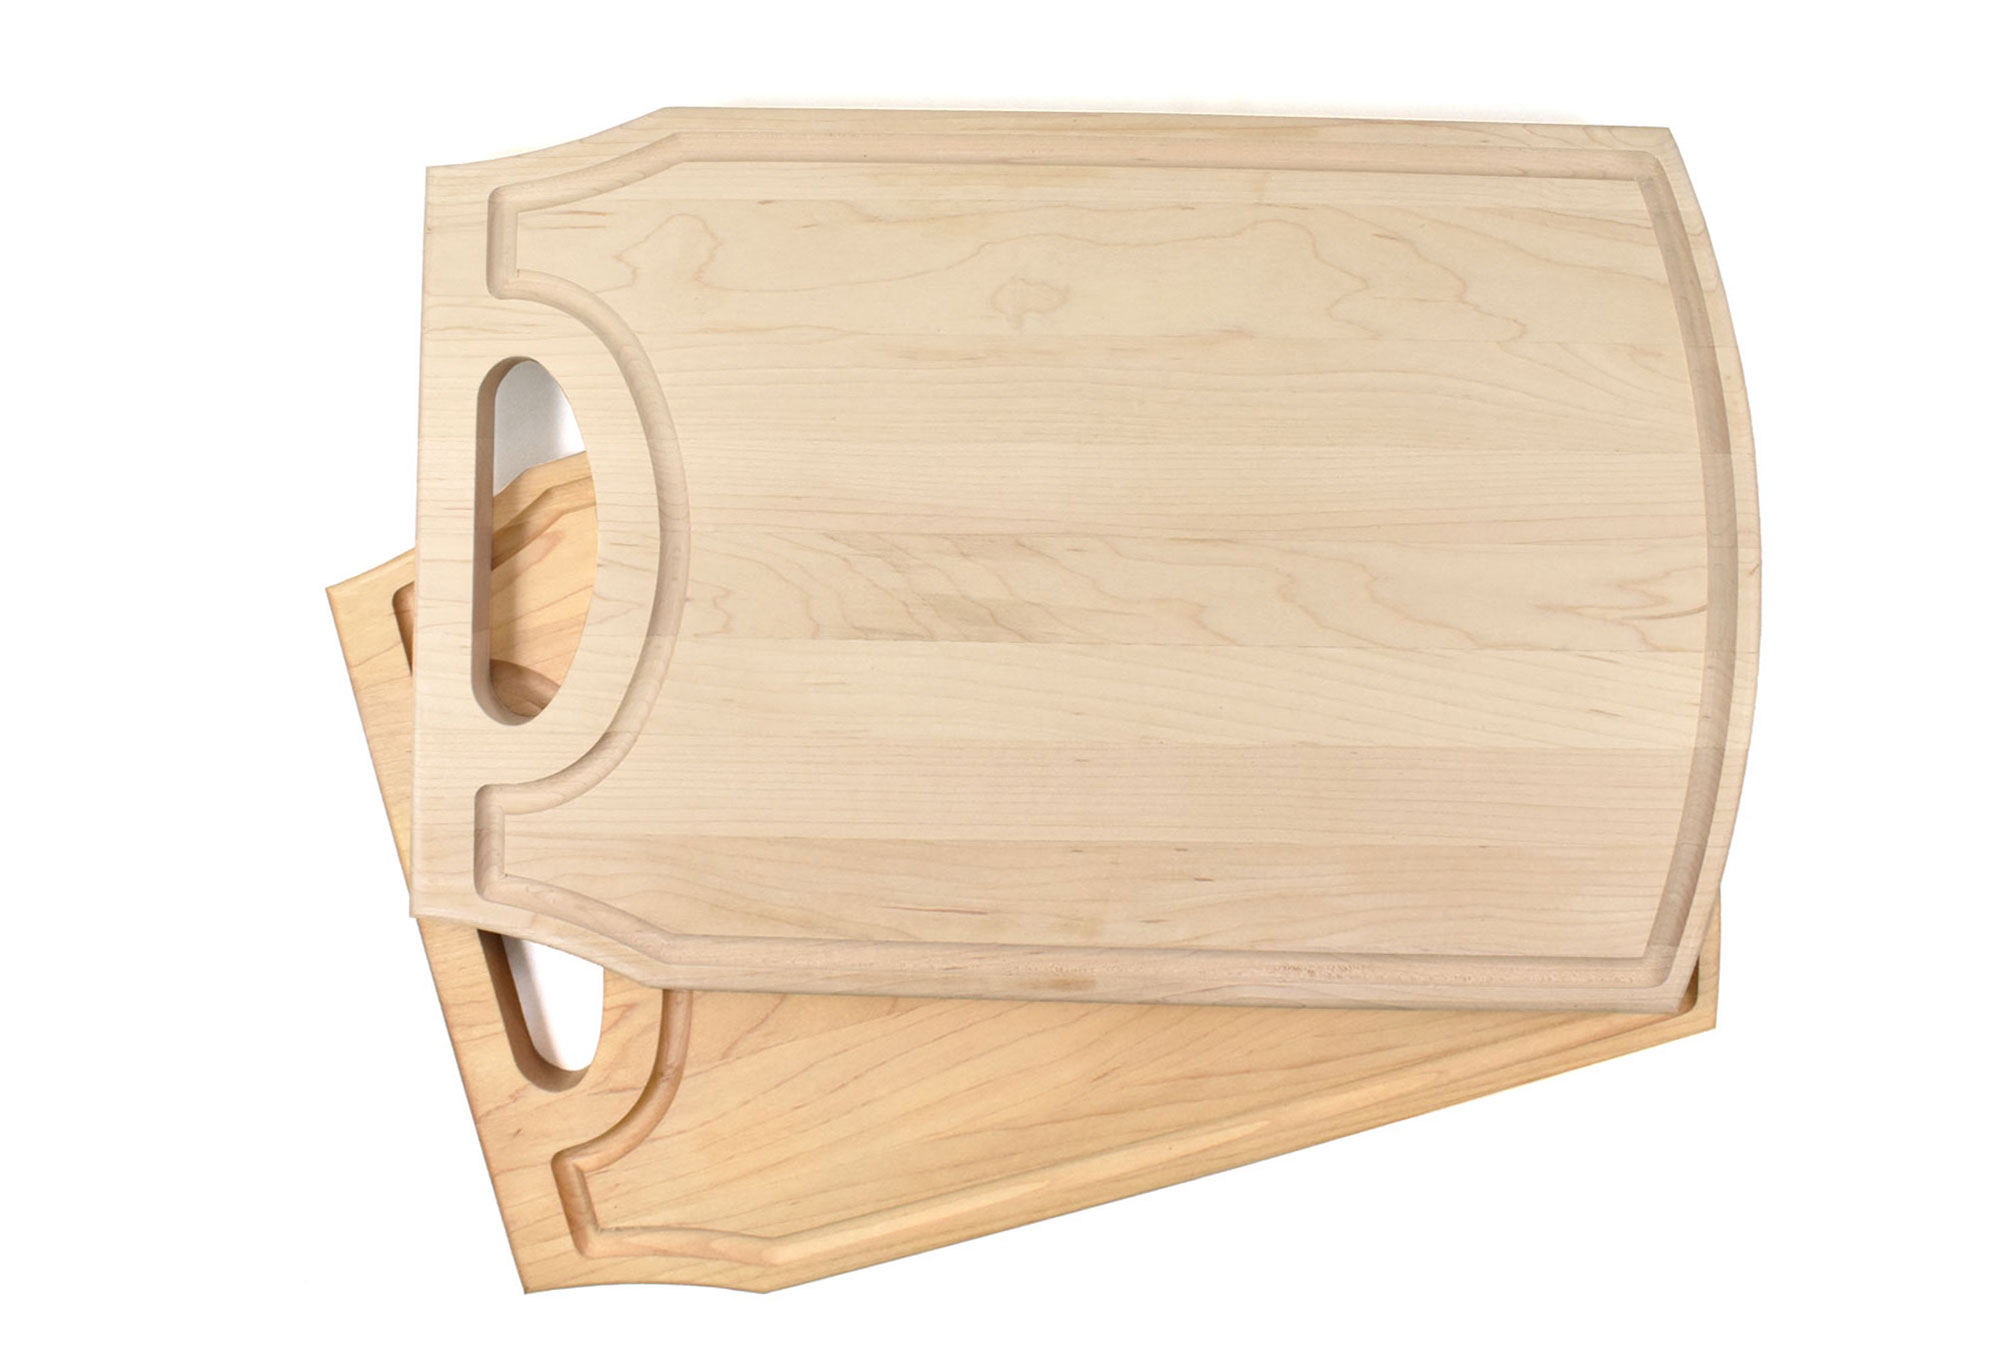 Large wooden cutting board with handle